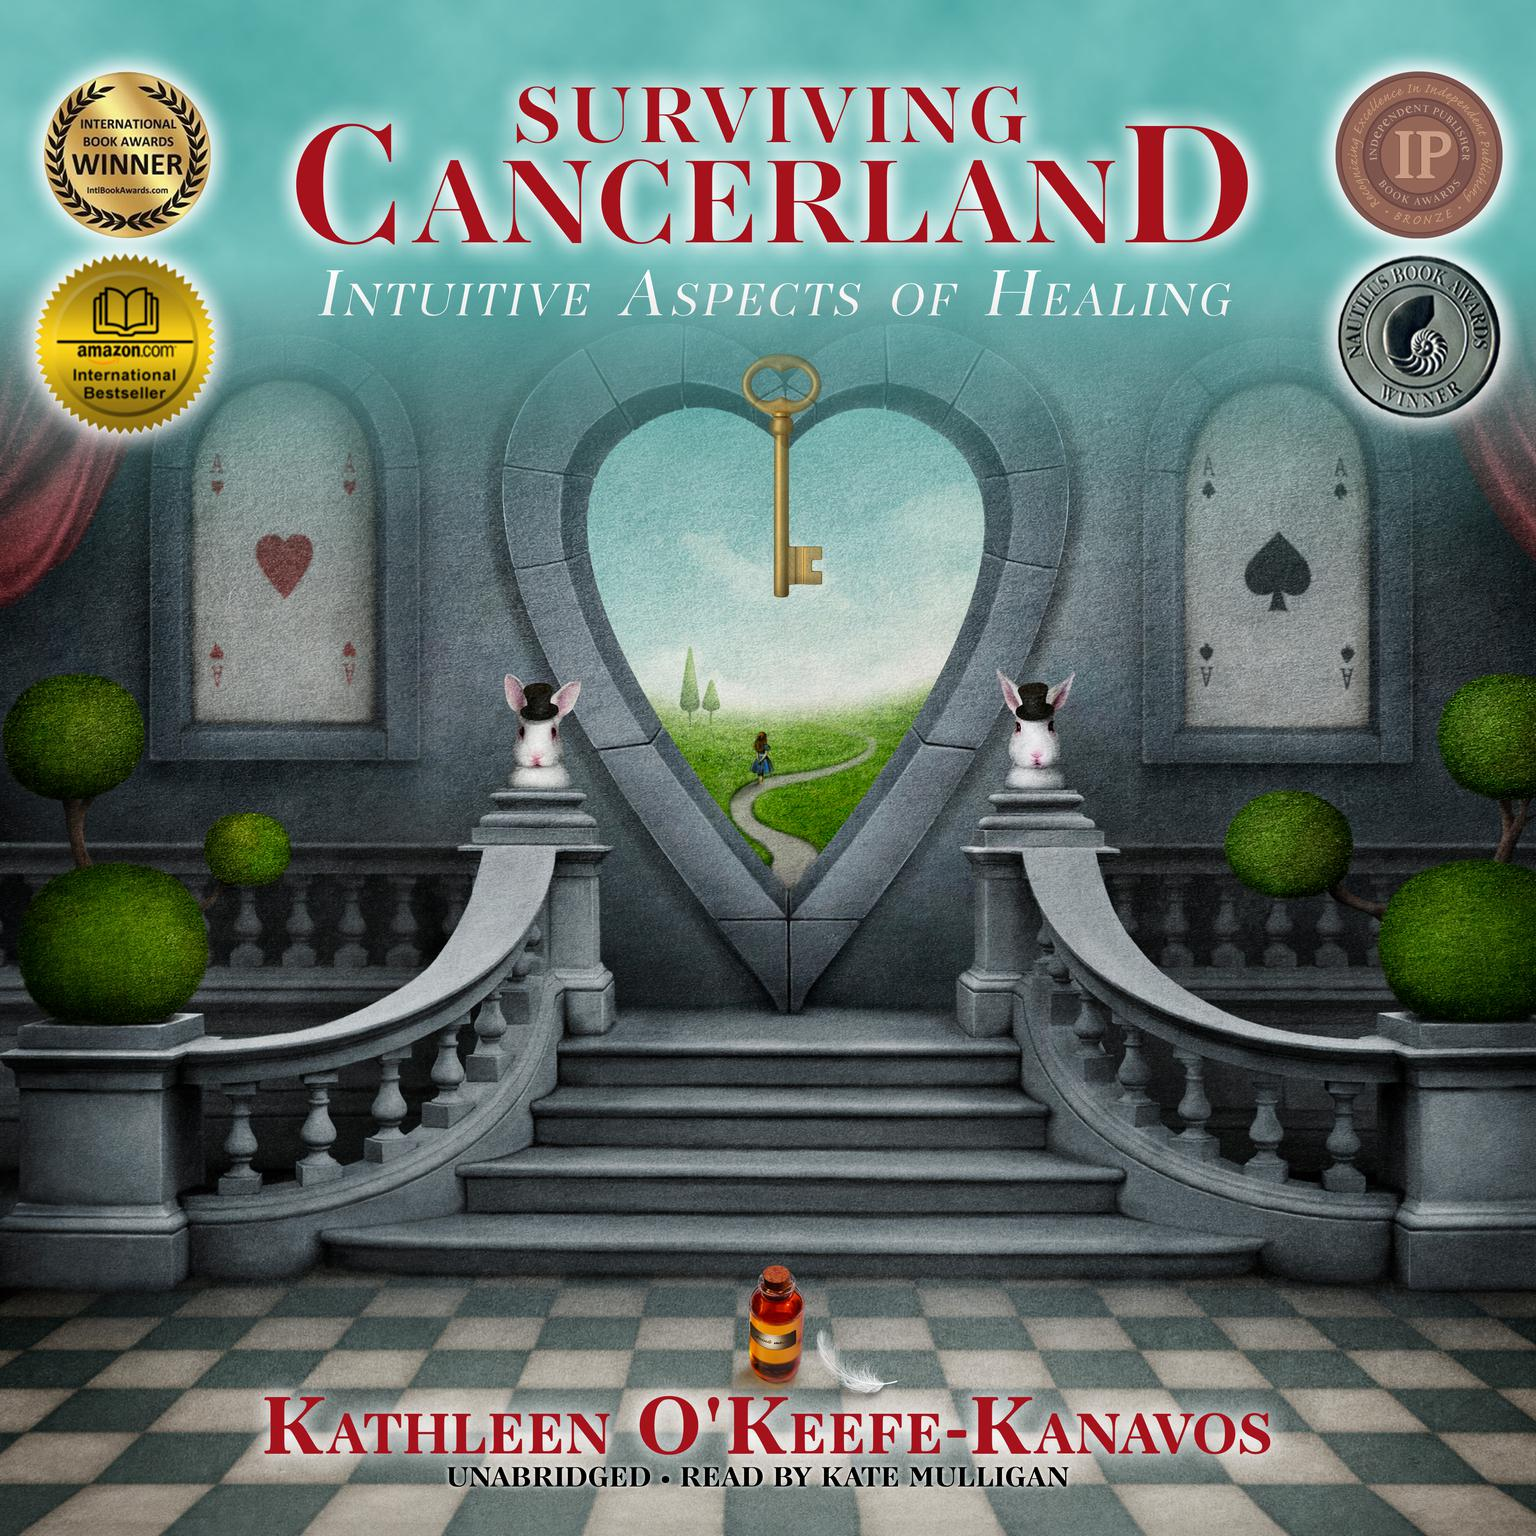 Surviving Cancerland: Intuitive Aspects of Healing Audiobook, by Kathleen O'Keefe-Kanavos